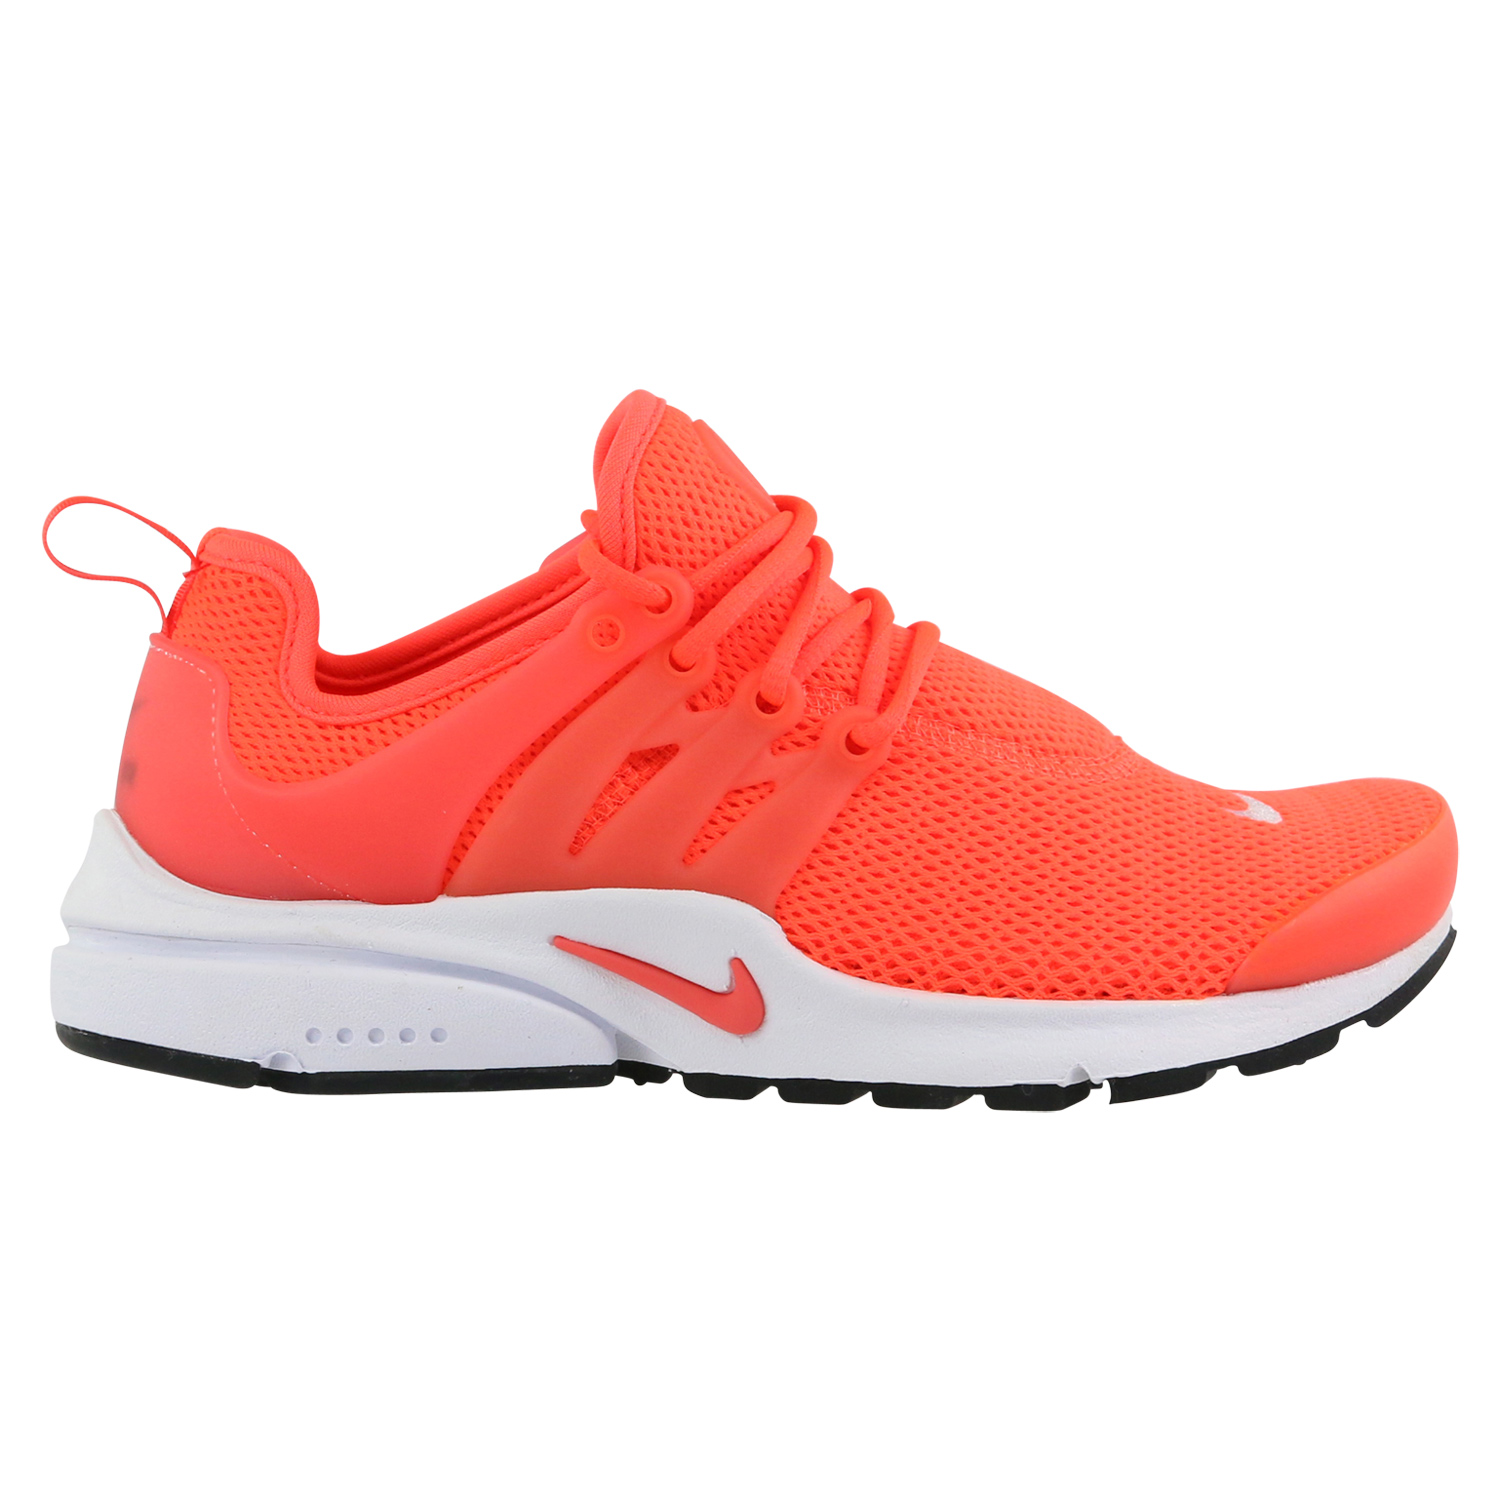 nike air presto orange ga wholesale. Black Bedroom Furniture Sets. Home Design Ideas